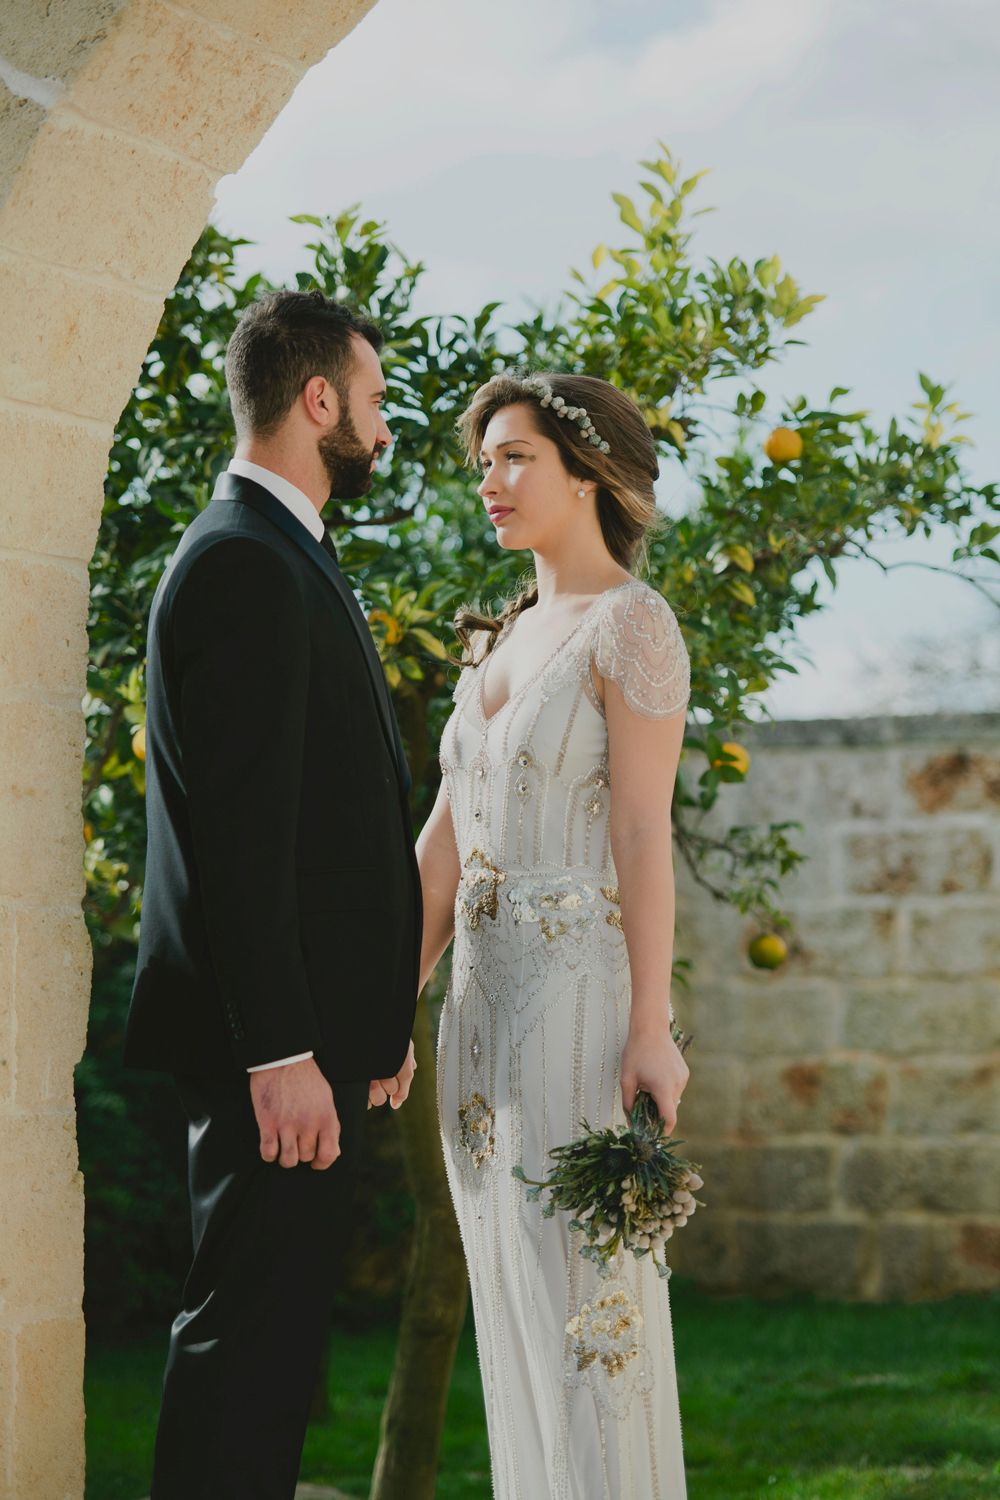 In Puglia, Italy, a team of vendors collaborated on this styled shoot inspired by the venue's surroundings: ocean and air.